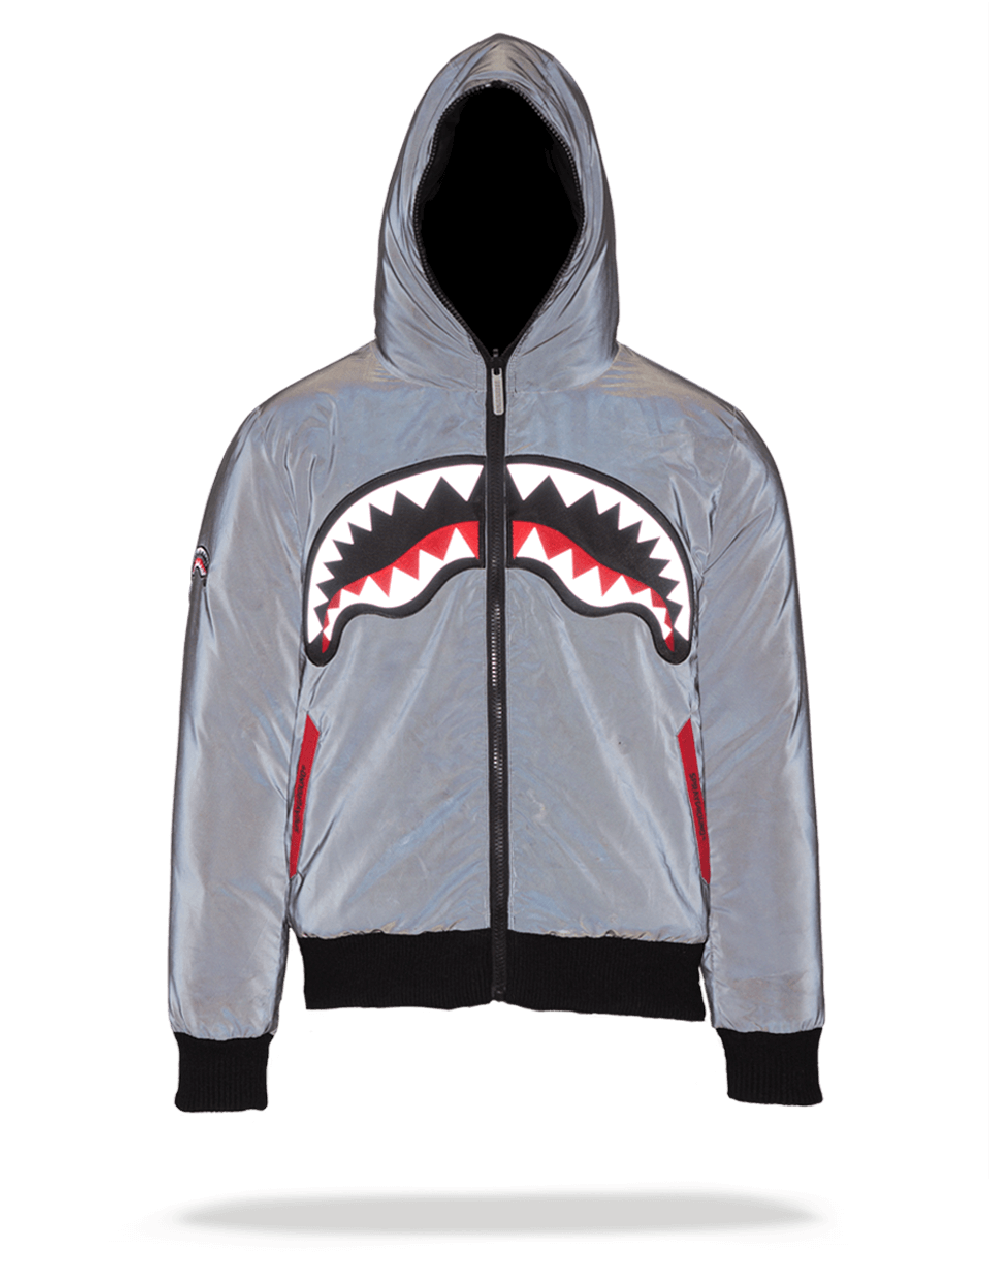 fdea75aaa9c BLACK REFLECTIVE SHARK MOUTH DOWN COAT ADULT (REVERSIBLE)   Sprayground  Backpacks, Bags, and Accessories